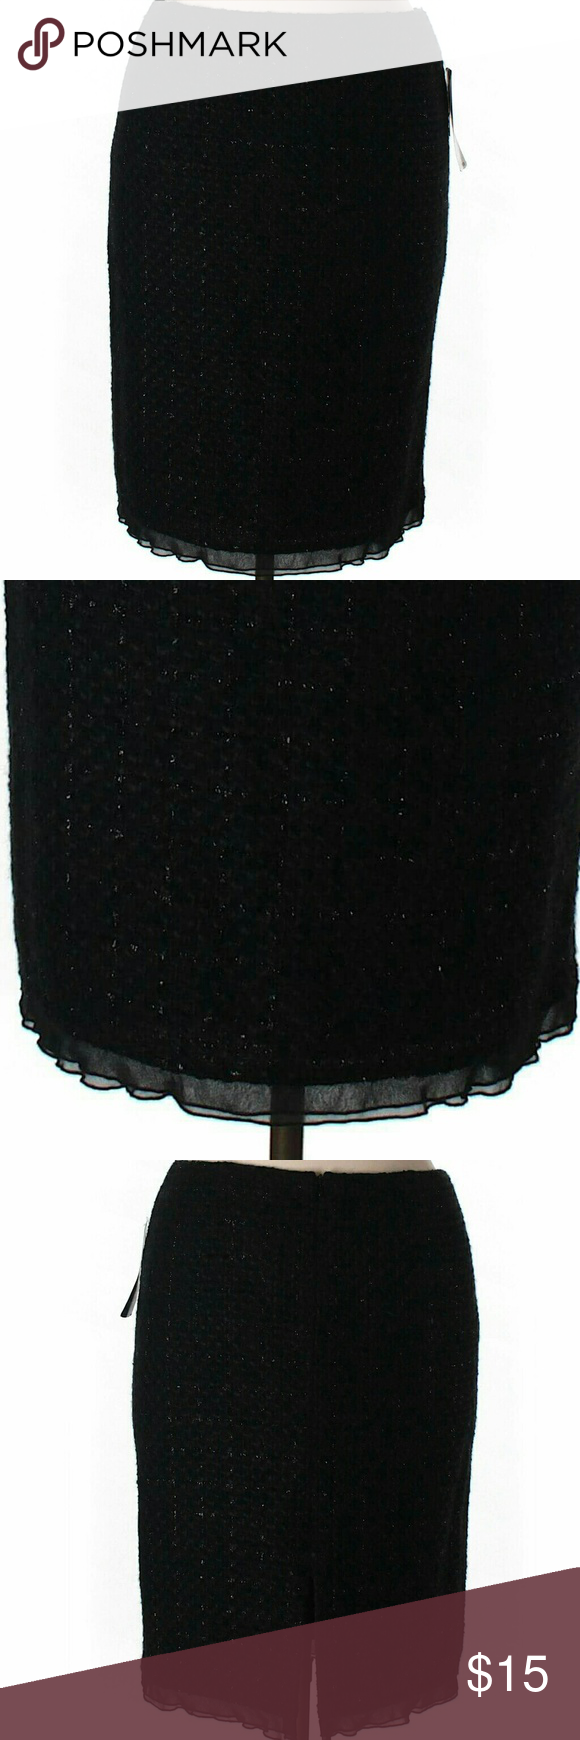 "Pencil Wool Skirt Pencil black with sparkly thread skirt. It's a wool, acrylic, nylon blend with a frill hem. Hidden back zipper and slit for freedom of movement. 23"" lenght. Looks like new! Nine West Skirts Pencil"